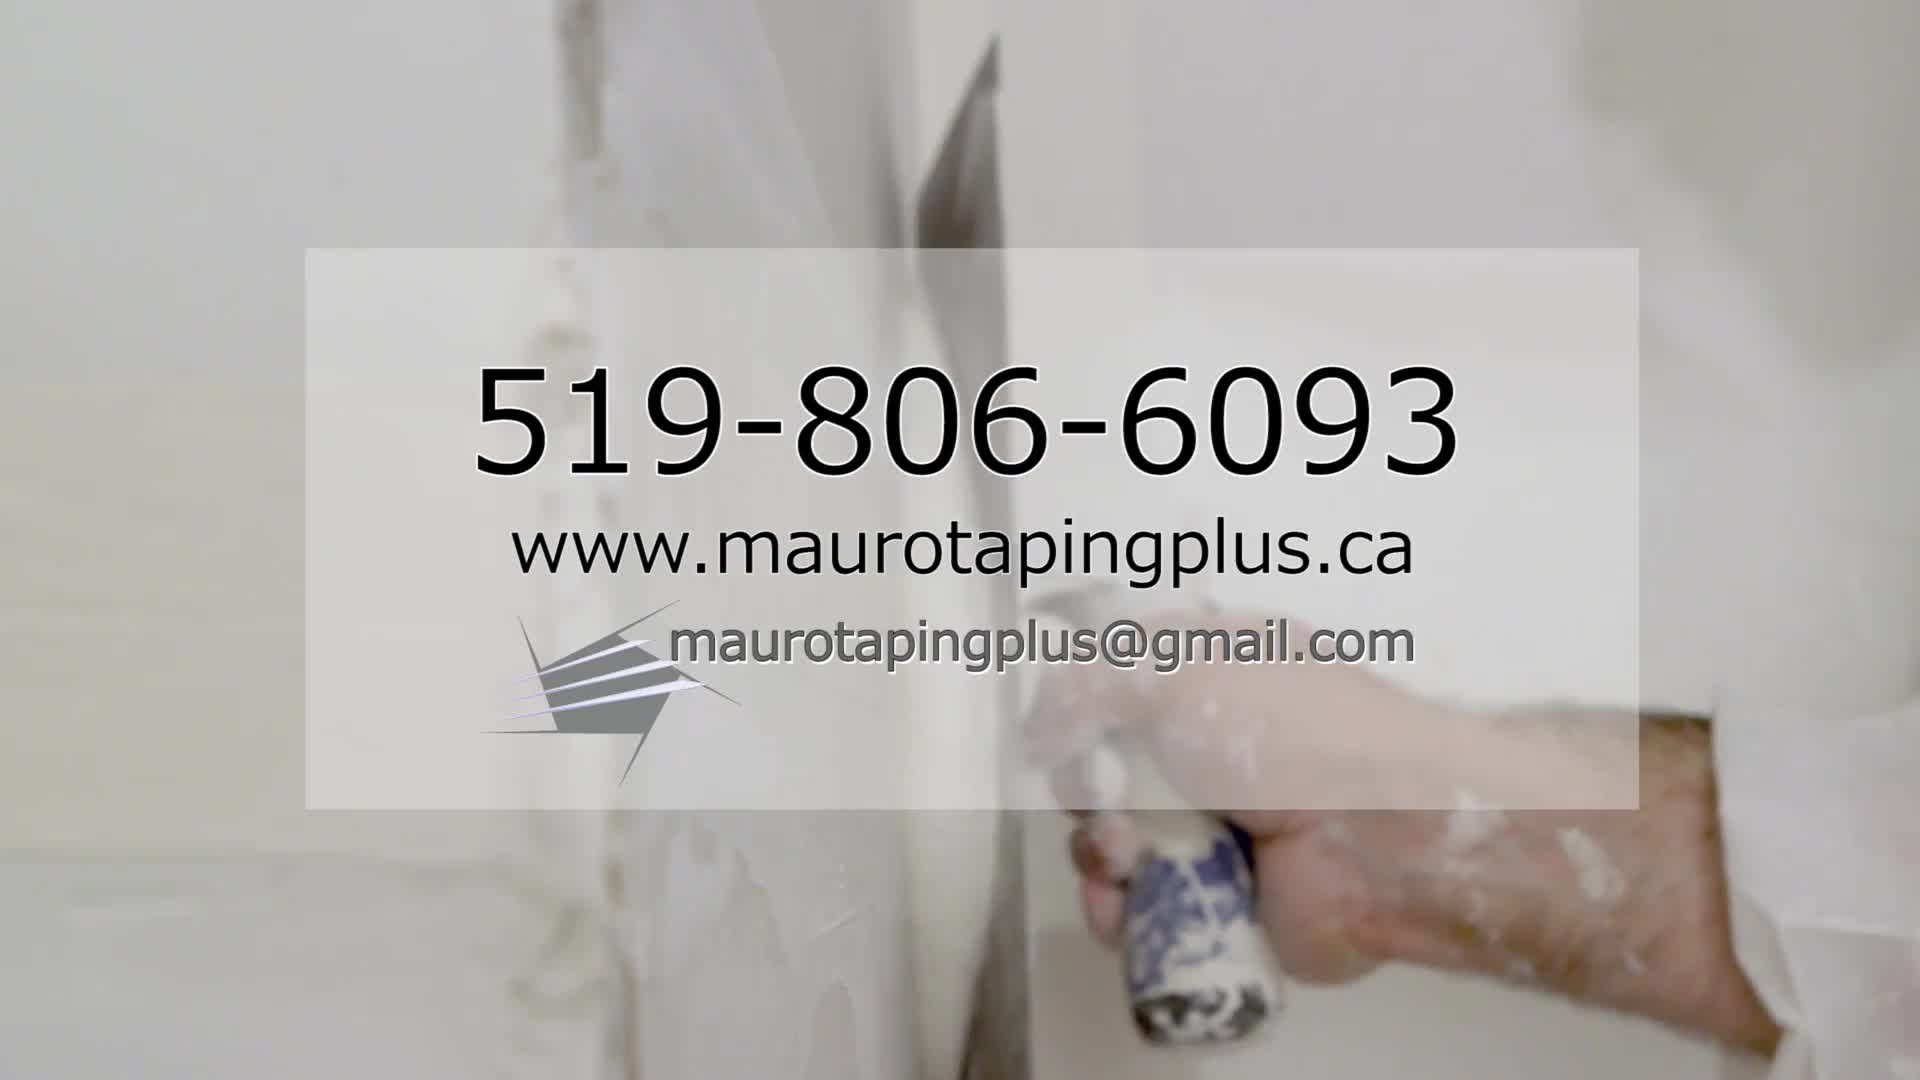 Mauro Taping Plus - Drywall Contractors & Drywalling - 519-806-6093